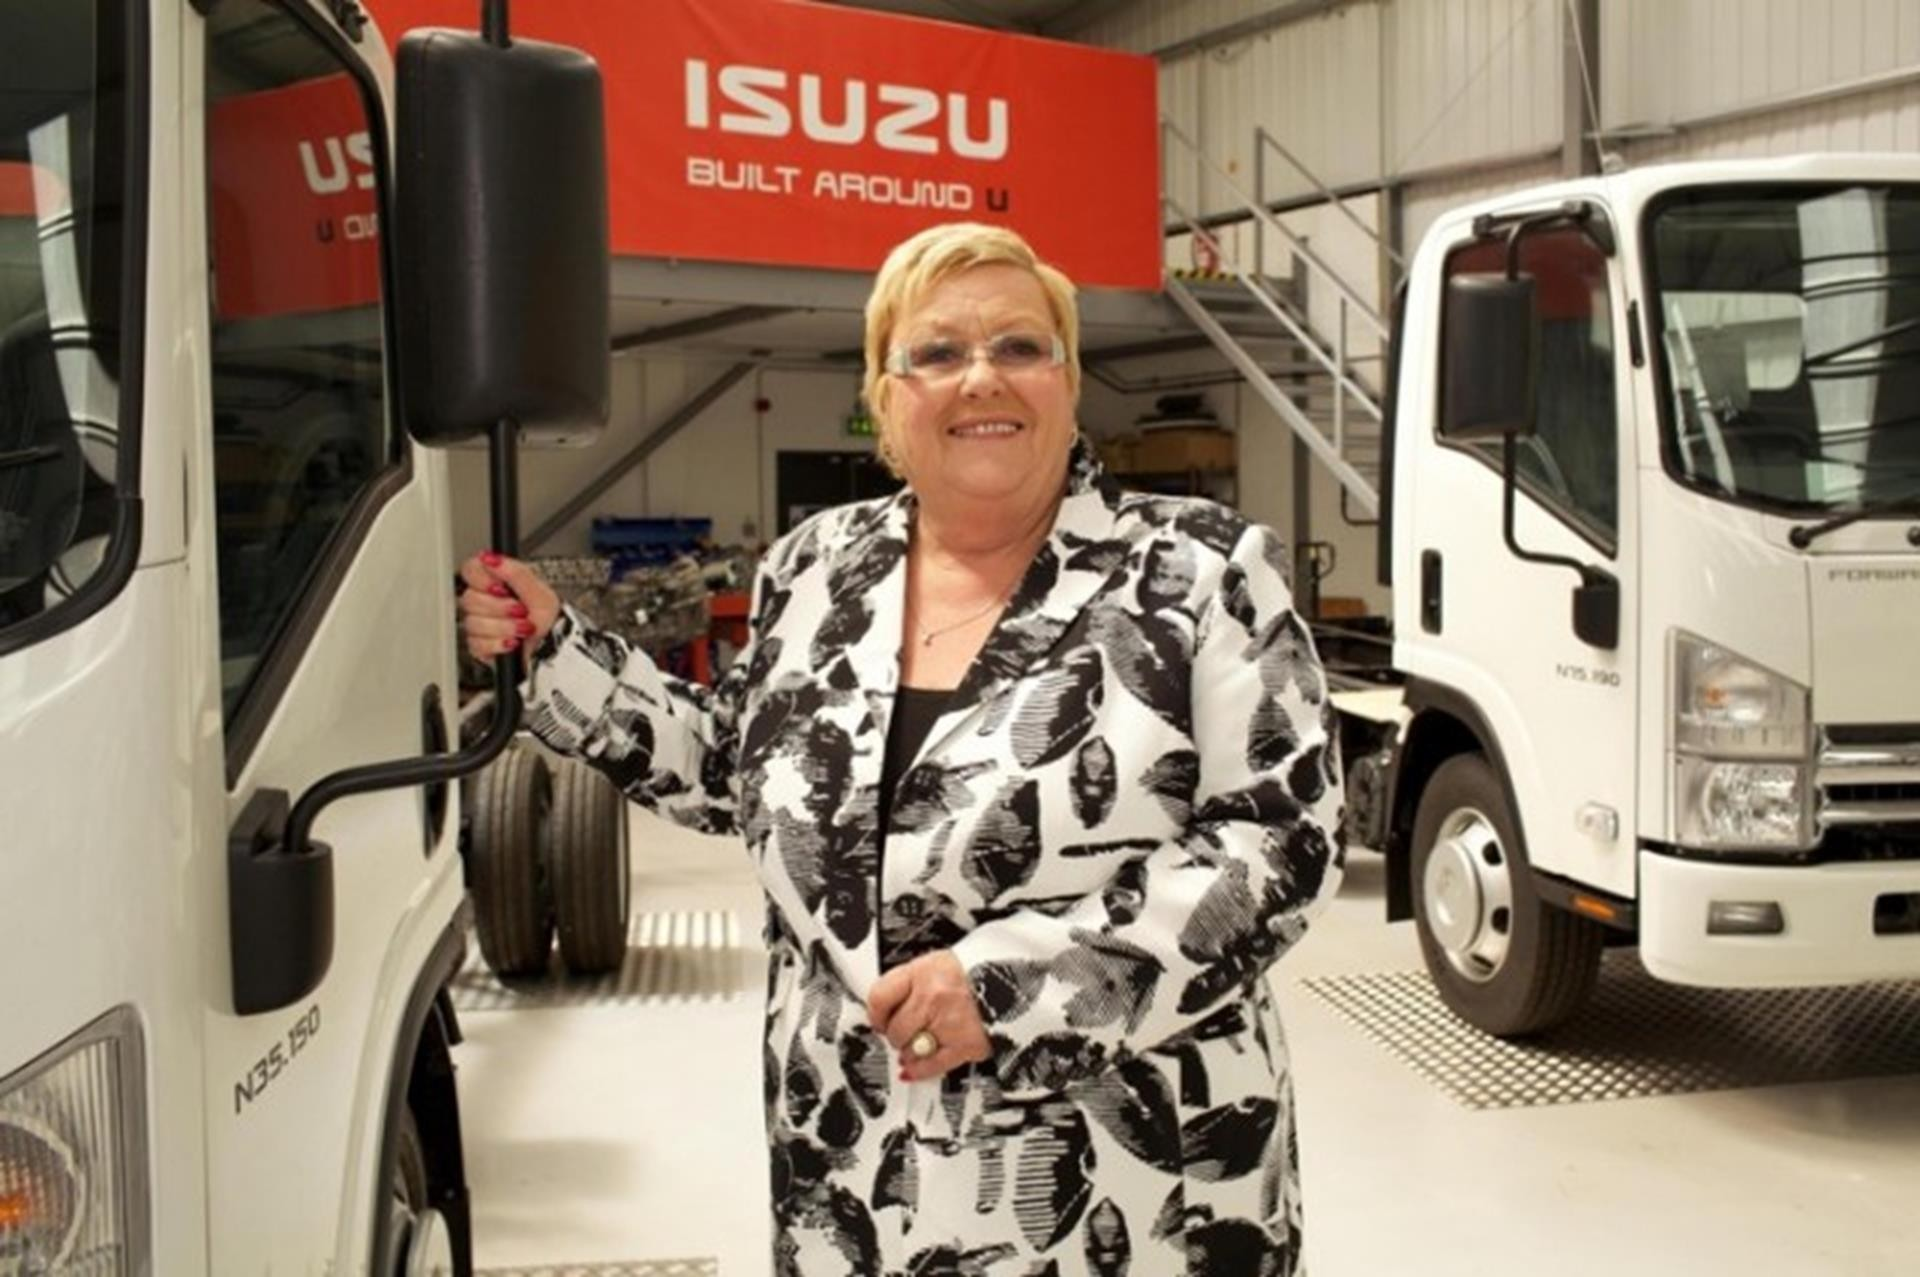 Nikki King OBE, the CEO of Isuzu Truck Ltd